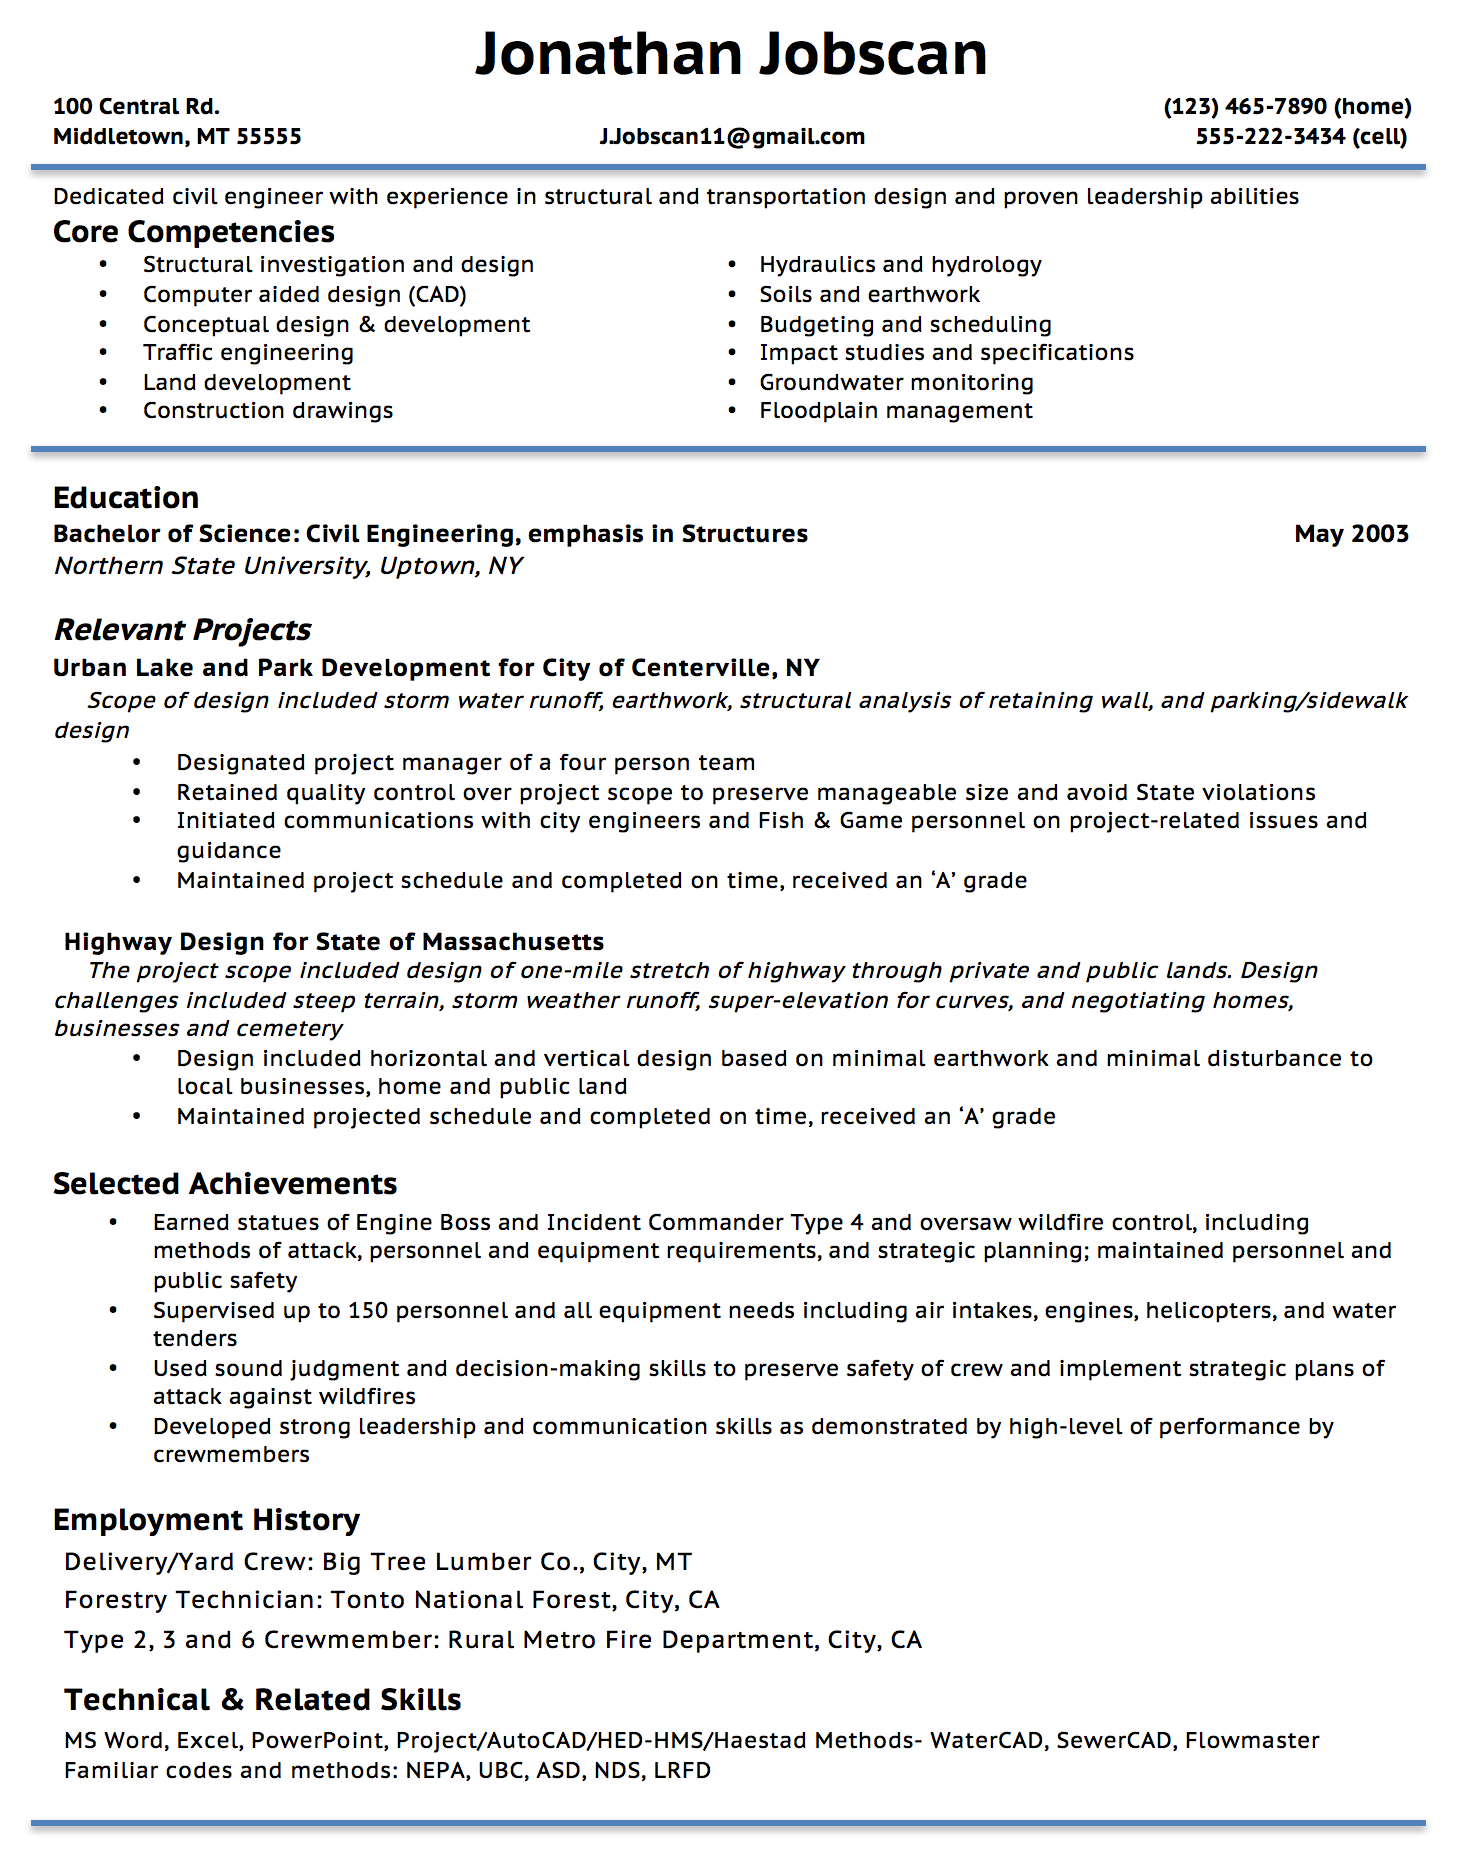 Opposenewapstandardsus  Seductive Resume Writing Guide  Jobscan With Inspiring Example Of A Functional Resume Format With Amazing Transferable Skills Resume Also Resume Template Mac In Addition Easy Resume Template Free And Example Of Skills On A Resume As Well As Hotel General Manager Resume Additionally Federal Resume Samples From Jobscanco With Opposenewapstandardsus  Inspiring Resume Writing Guide  Jobscan With Amazing Example Of A Functional Resume Format And Seductive Transferable Skills Resume Also Resume Template Mac In Addition Easy Resume Template Free From Jobscanco